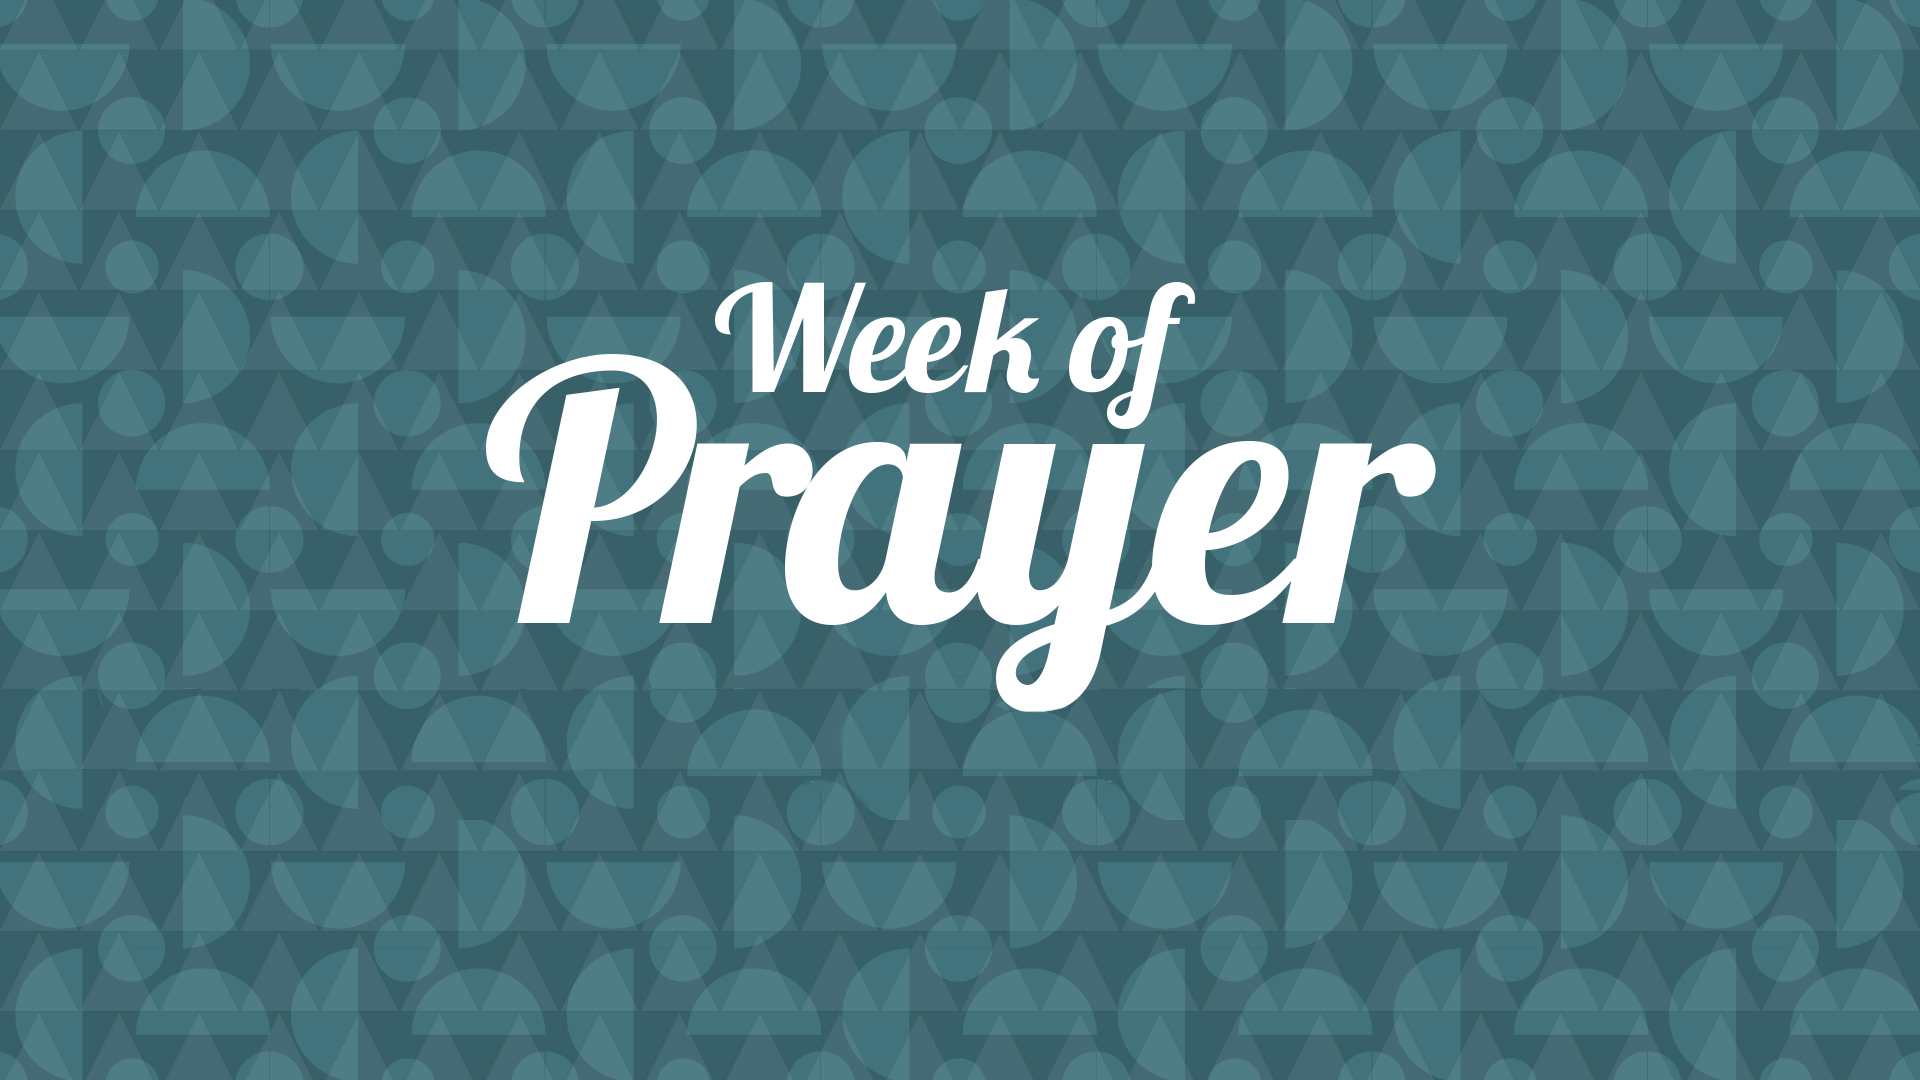 week of prayer sunday.png